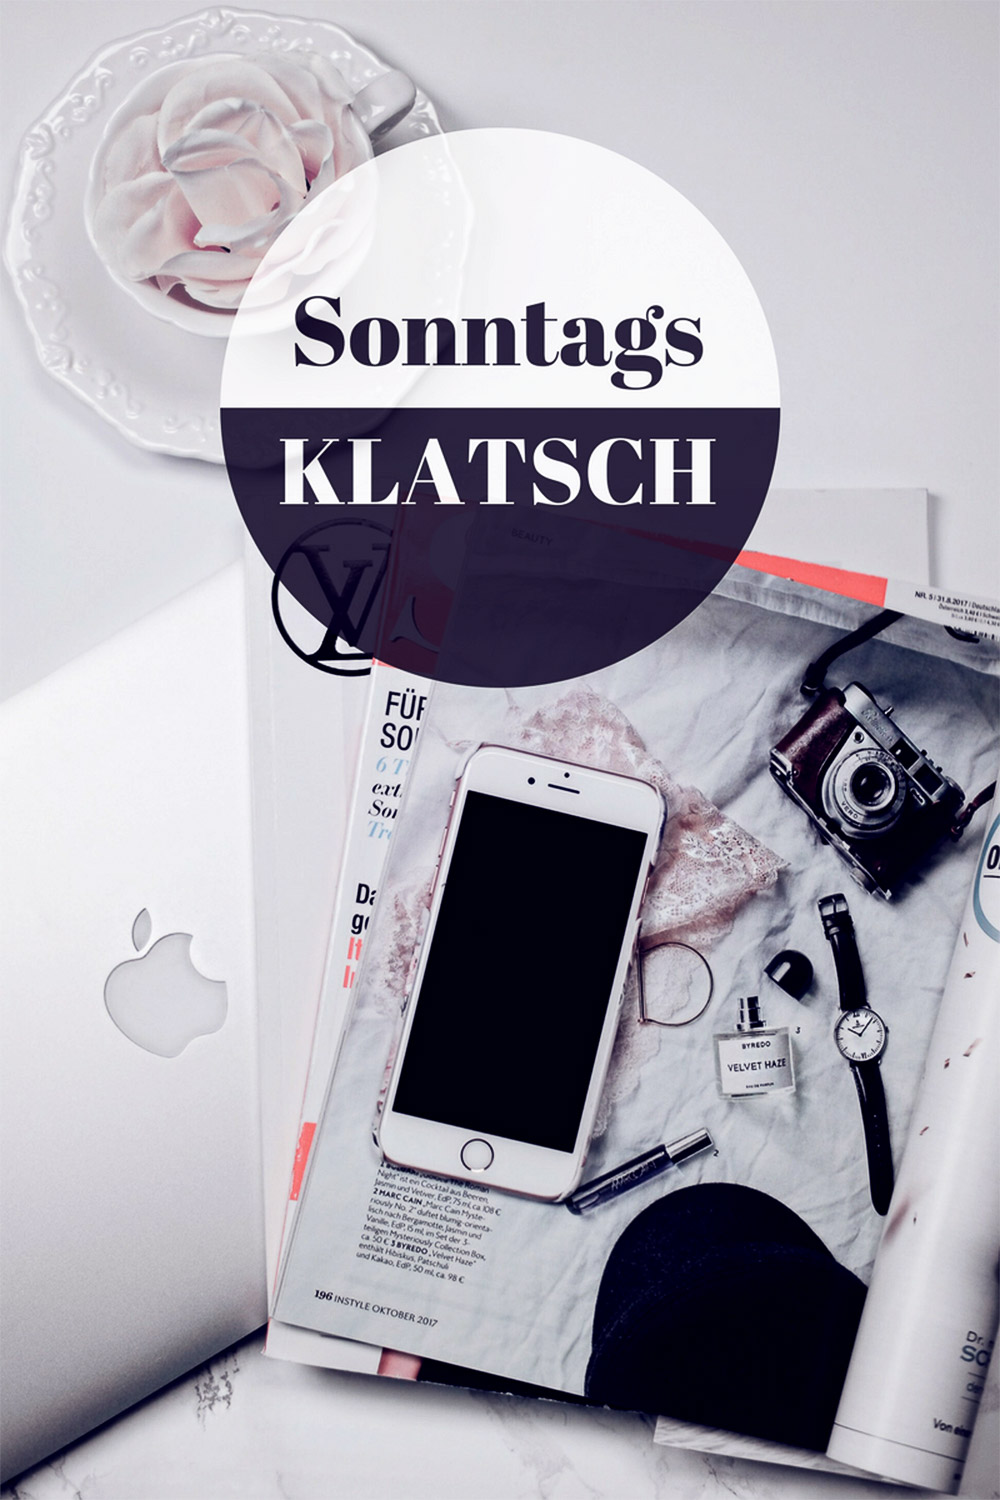 Monatsrückblick Oktober-Instagram Stories-Sonntagsklatsch-Pressdays-Blogger Events-Herbst Looks-Neues Blogdesign